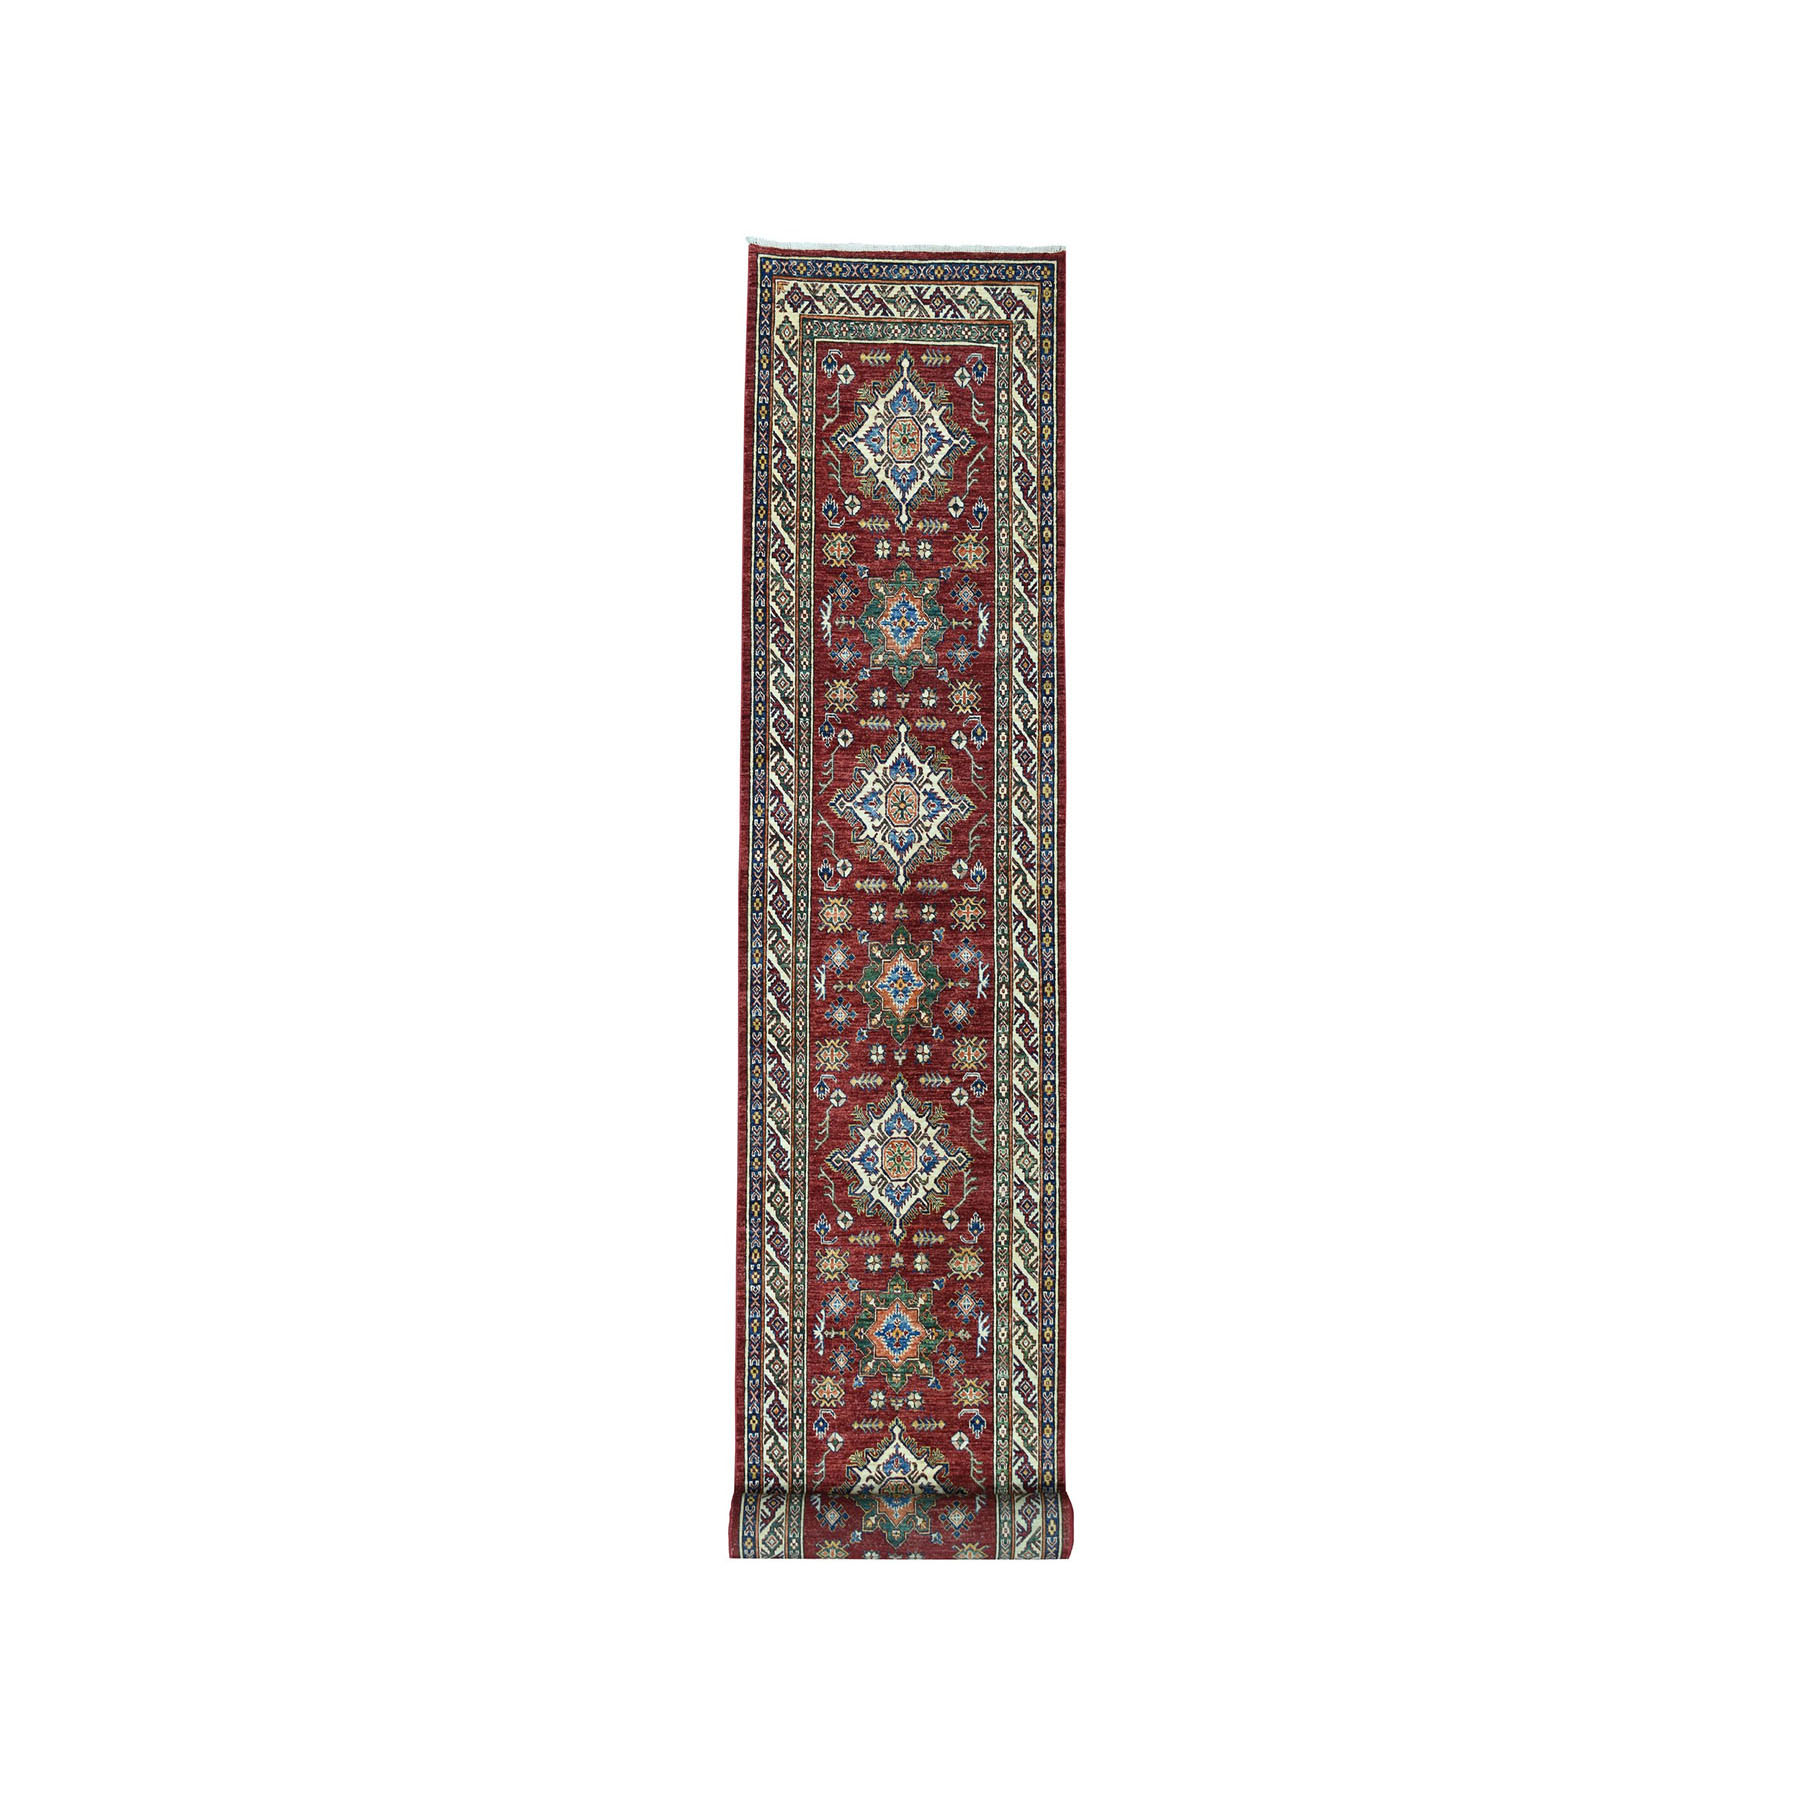 "3'4""x19' Red Super Kazak Geometric Design Pure Wool XL Runner Hand-Knotted Oriental Rug"